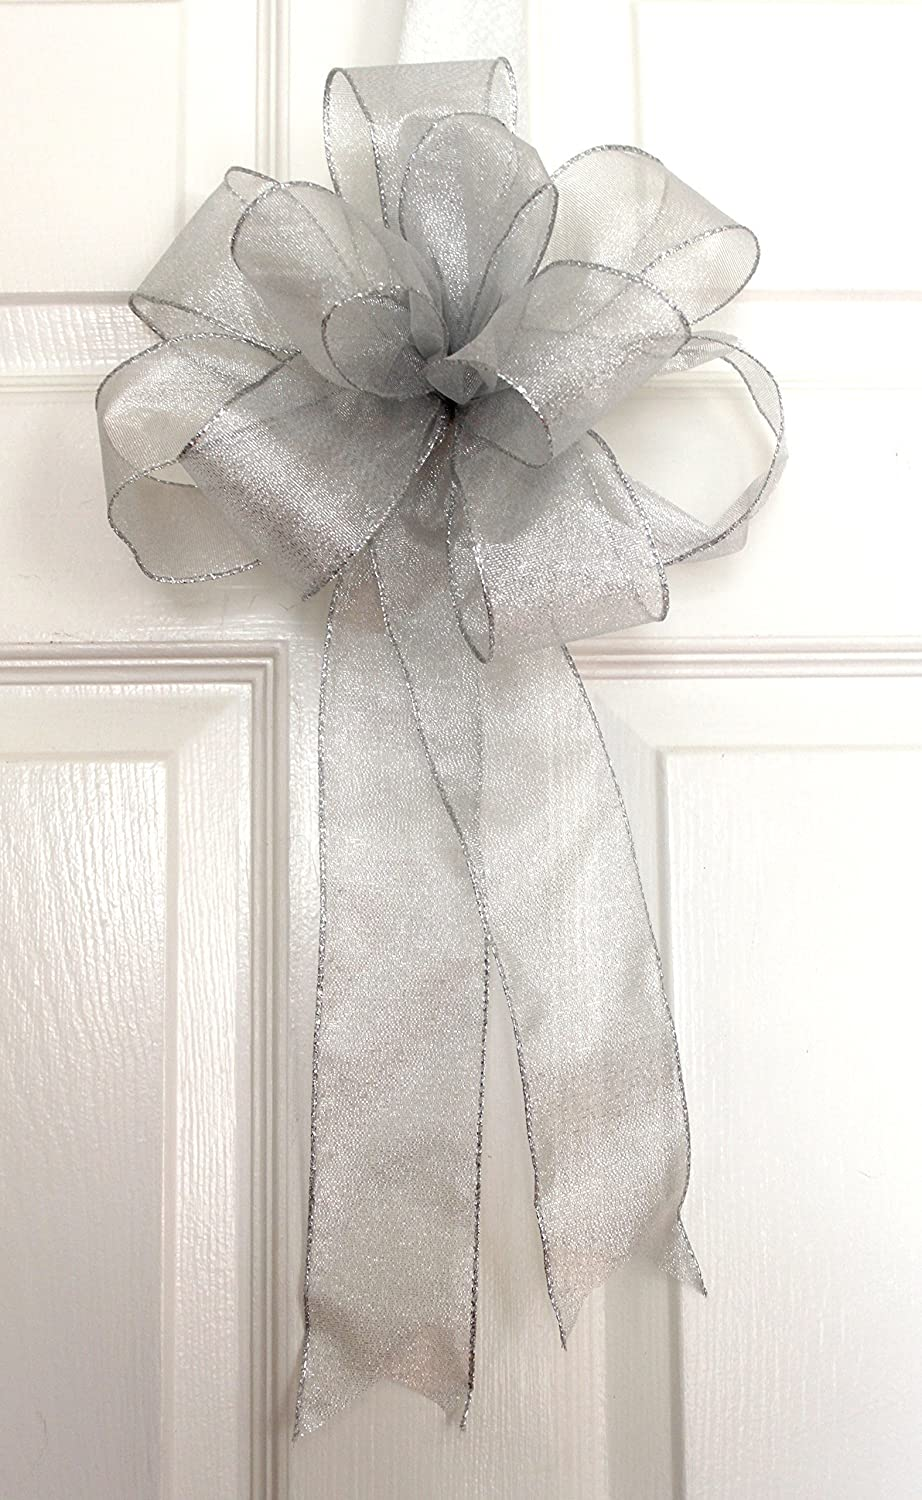 Amazon.com: Silver sheer wired ribbon bow for wreaths, Christmas ...